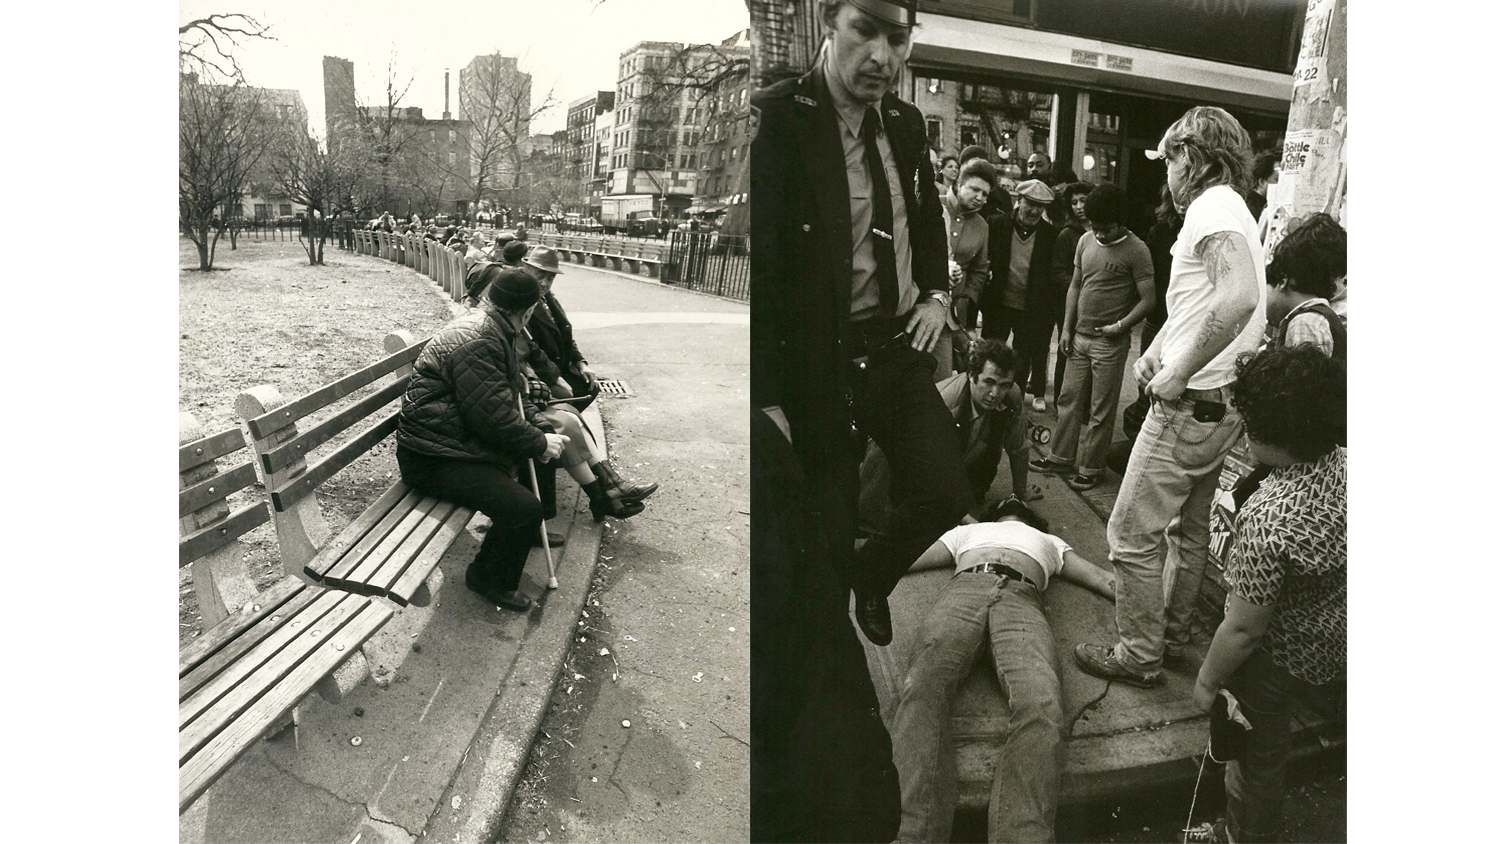 L: Tompkins Square Park, 1981. R: Overdose on Second Ave and East Fourth Street, 1981